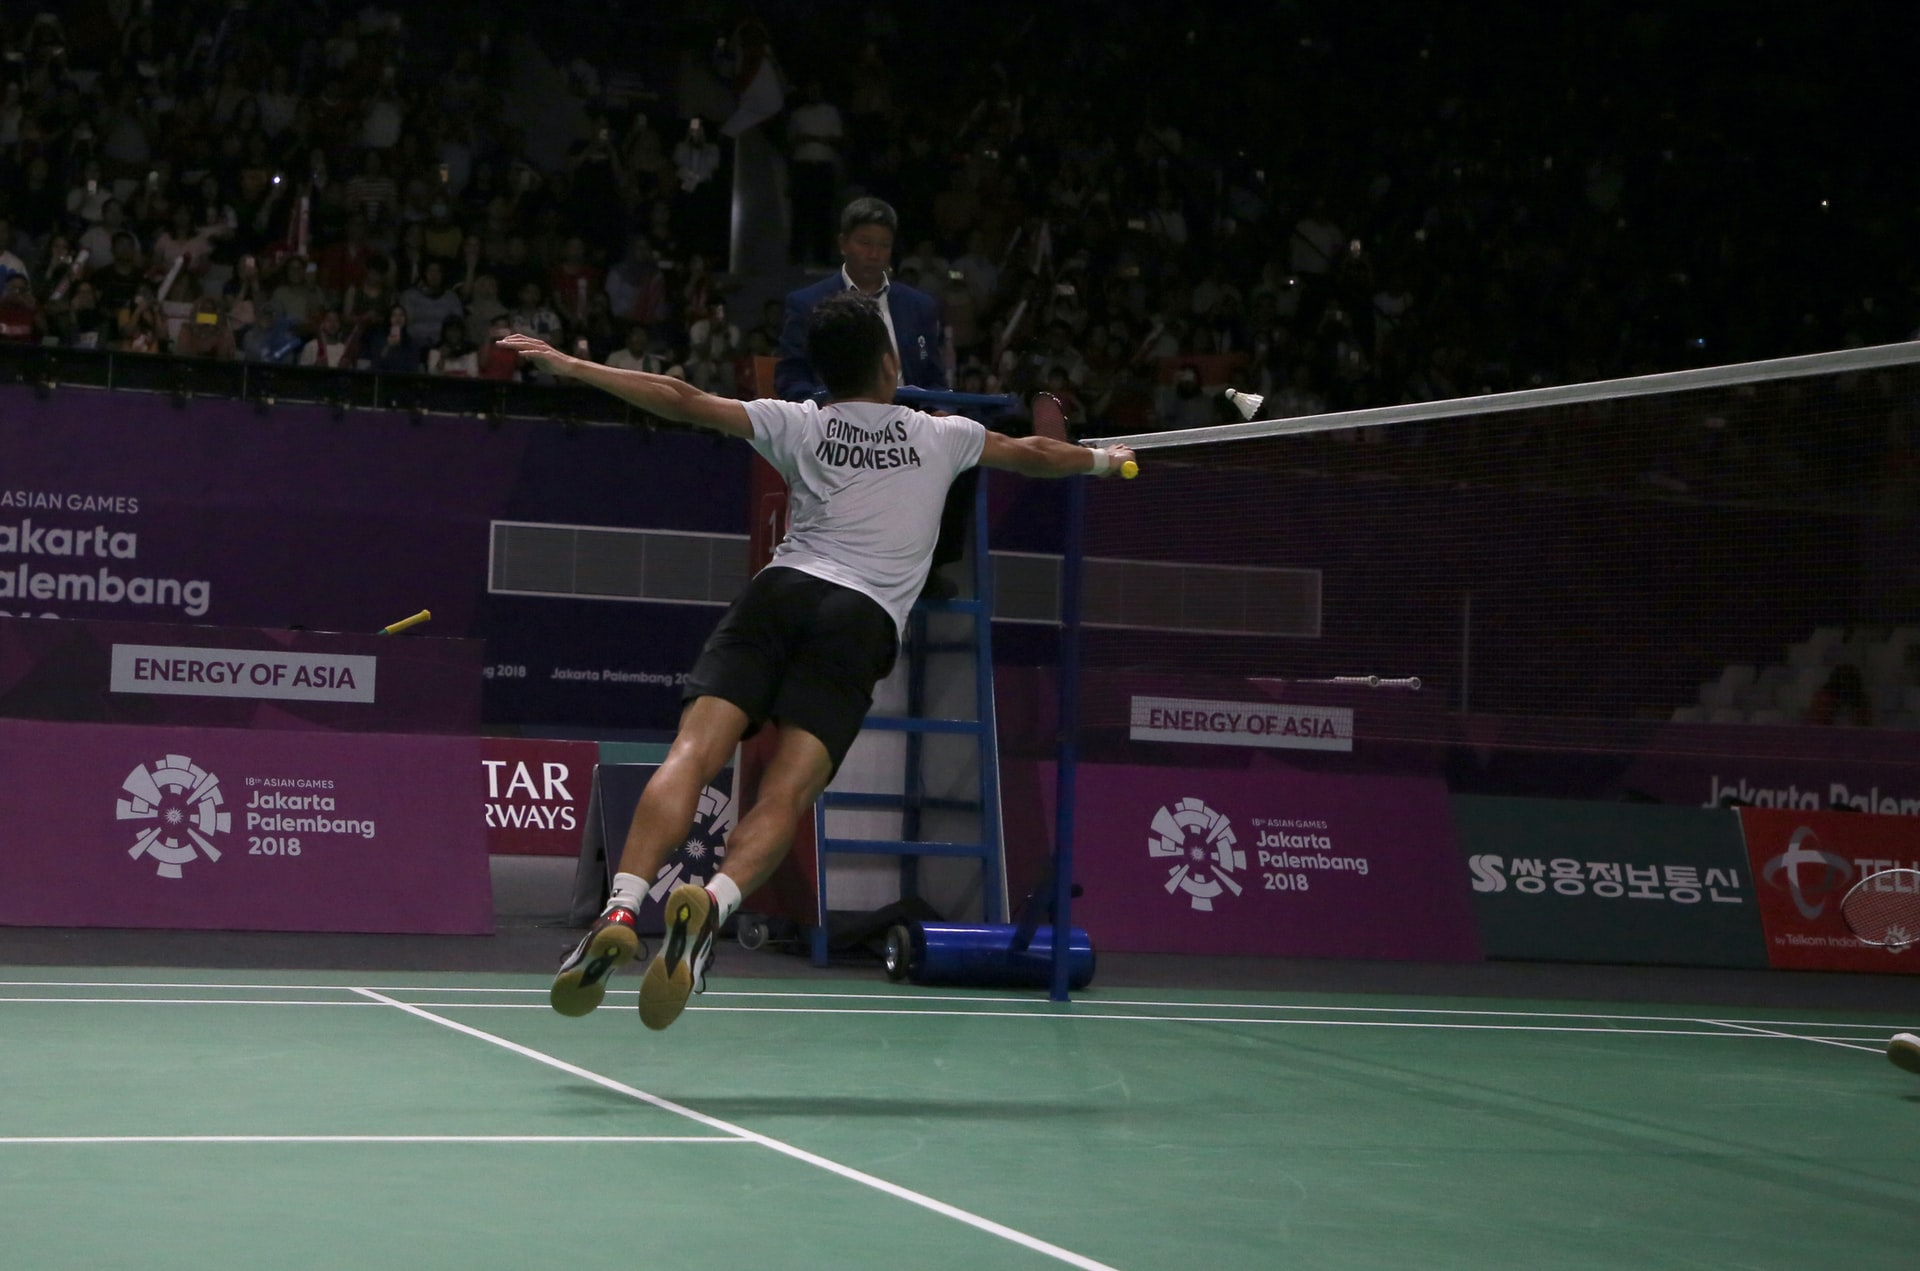 ginting-badminton-athlete